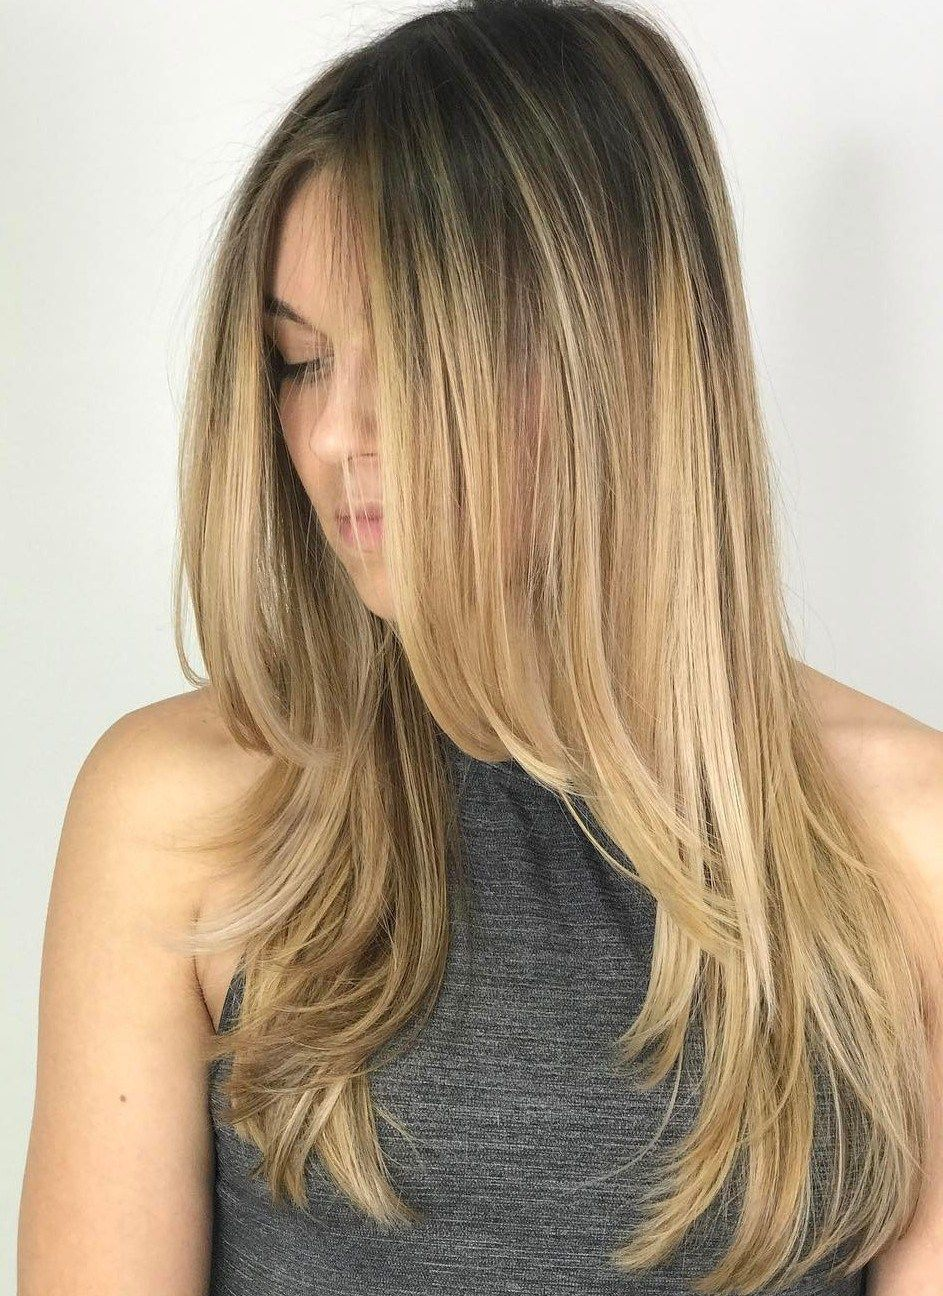 Descending Face Framing Layers Thin Straight Hair Long Thin Hair Haircuts For Long Hair With Layers